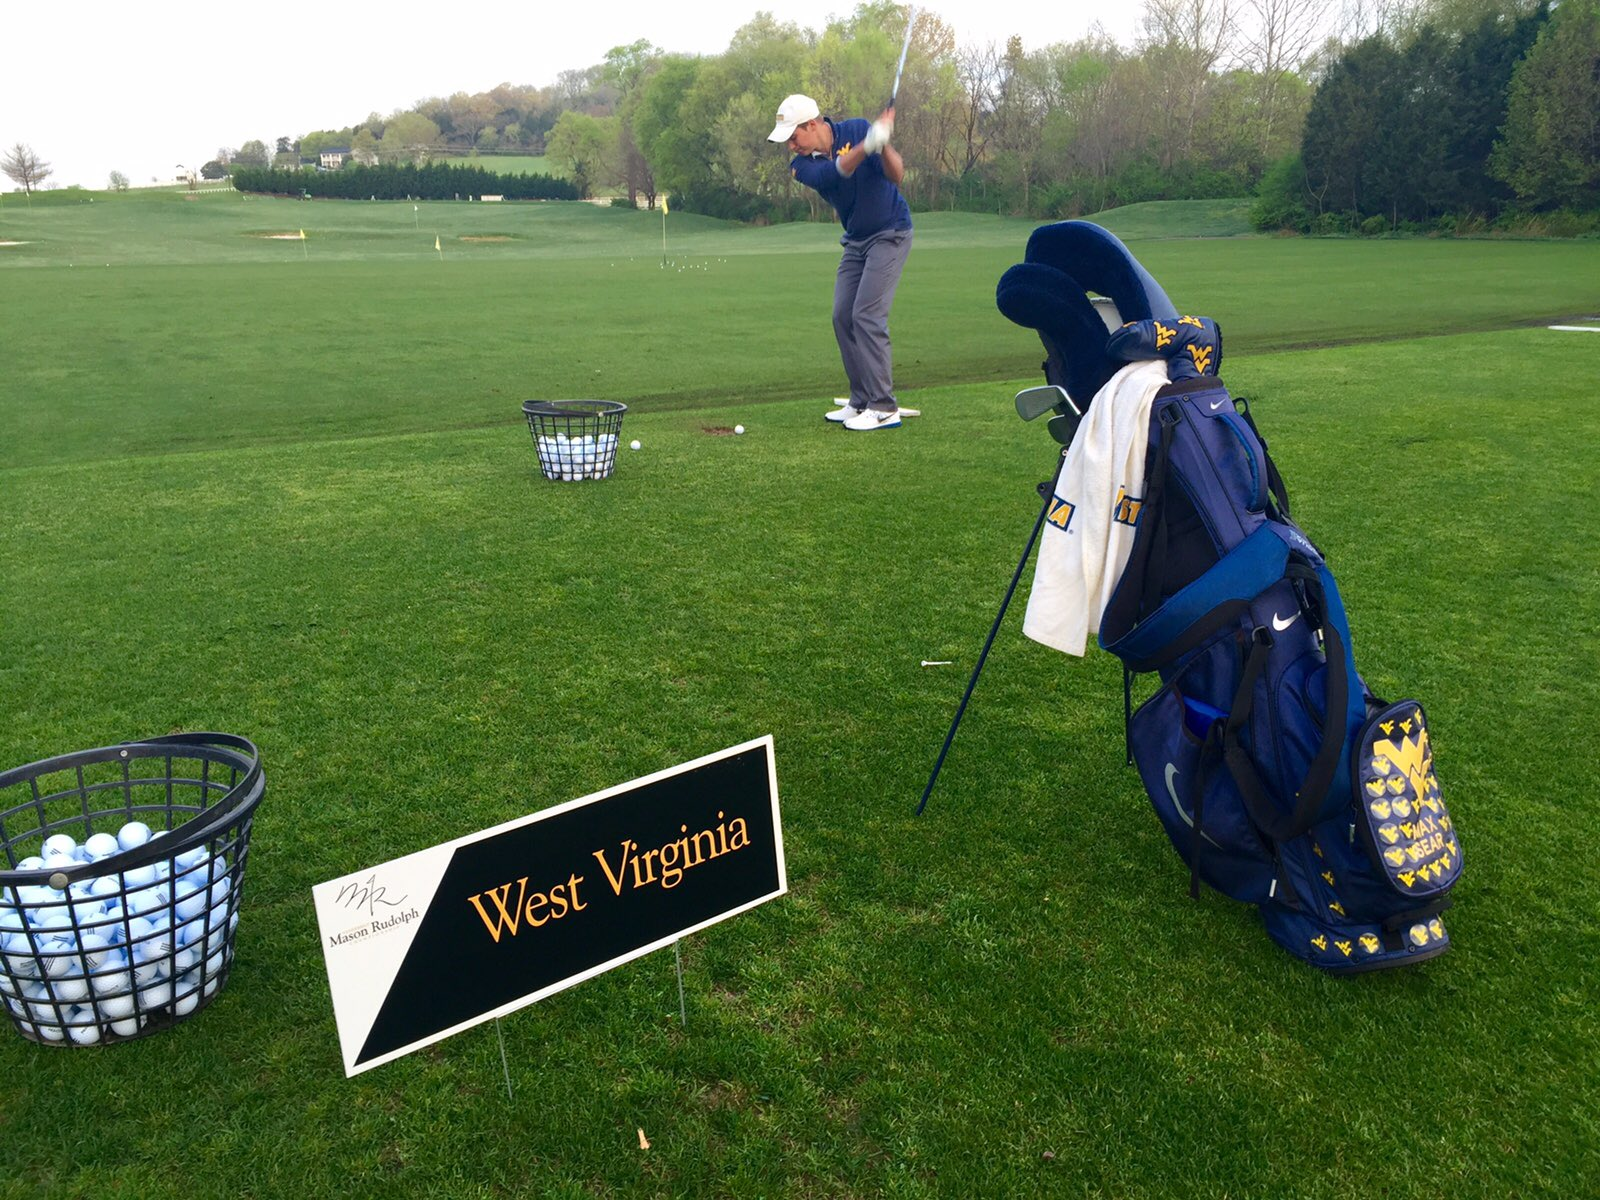 Wvu Golf On Twitter Practice Round Before Tomorrow S Mason Rudolph Championship Https T Co 8gevxnrbvf